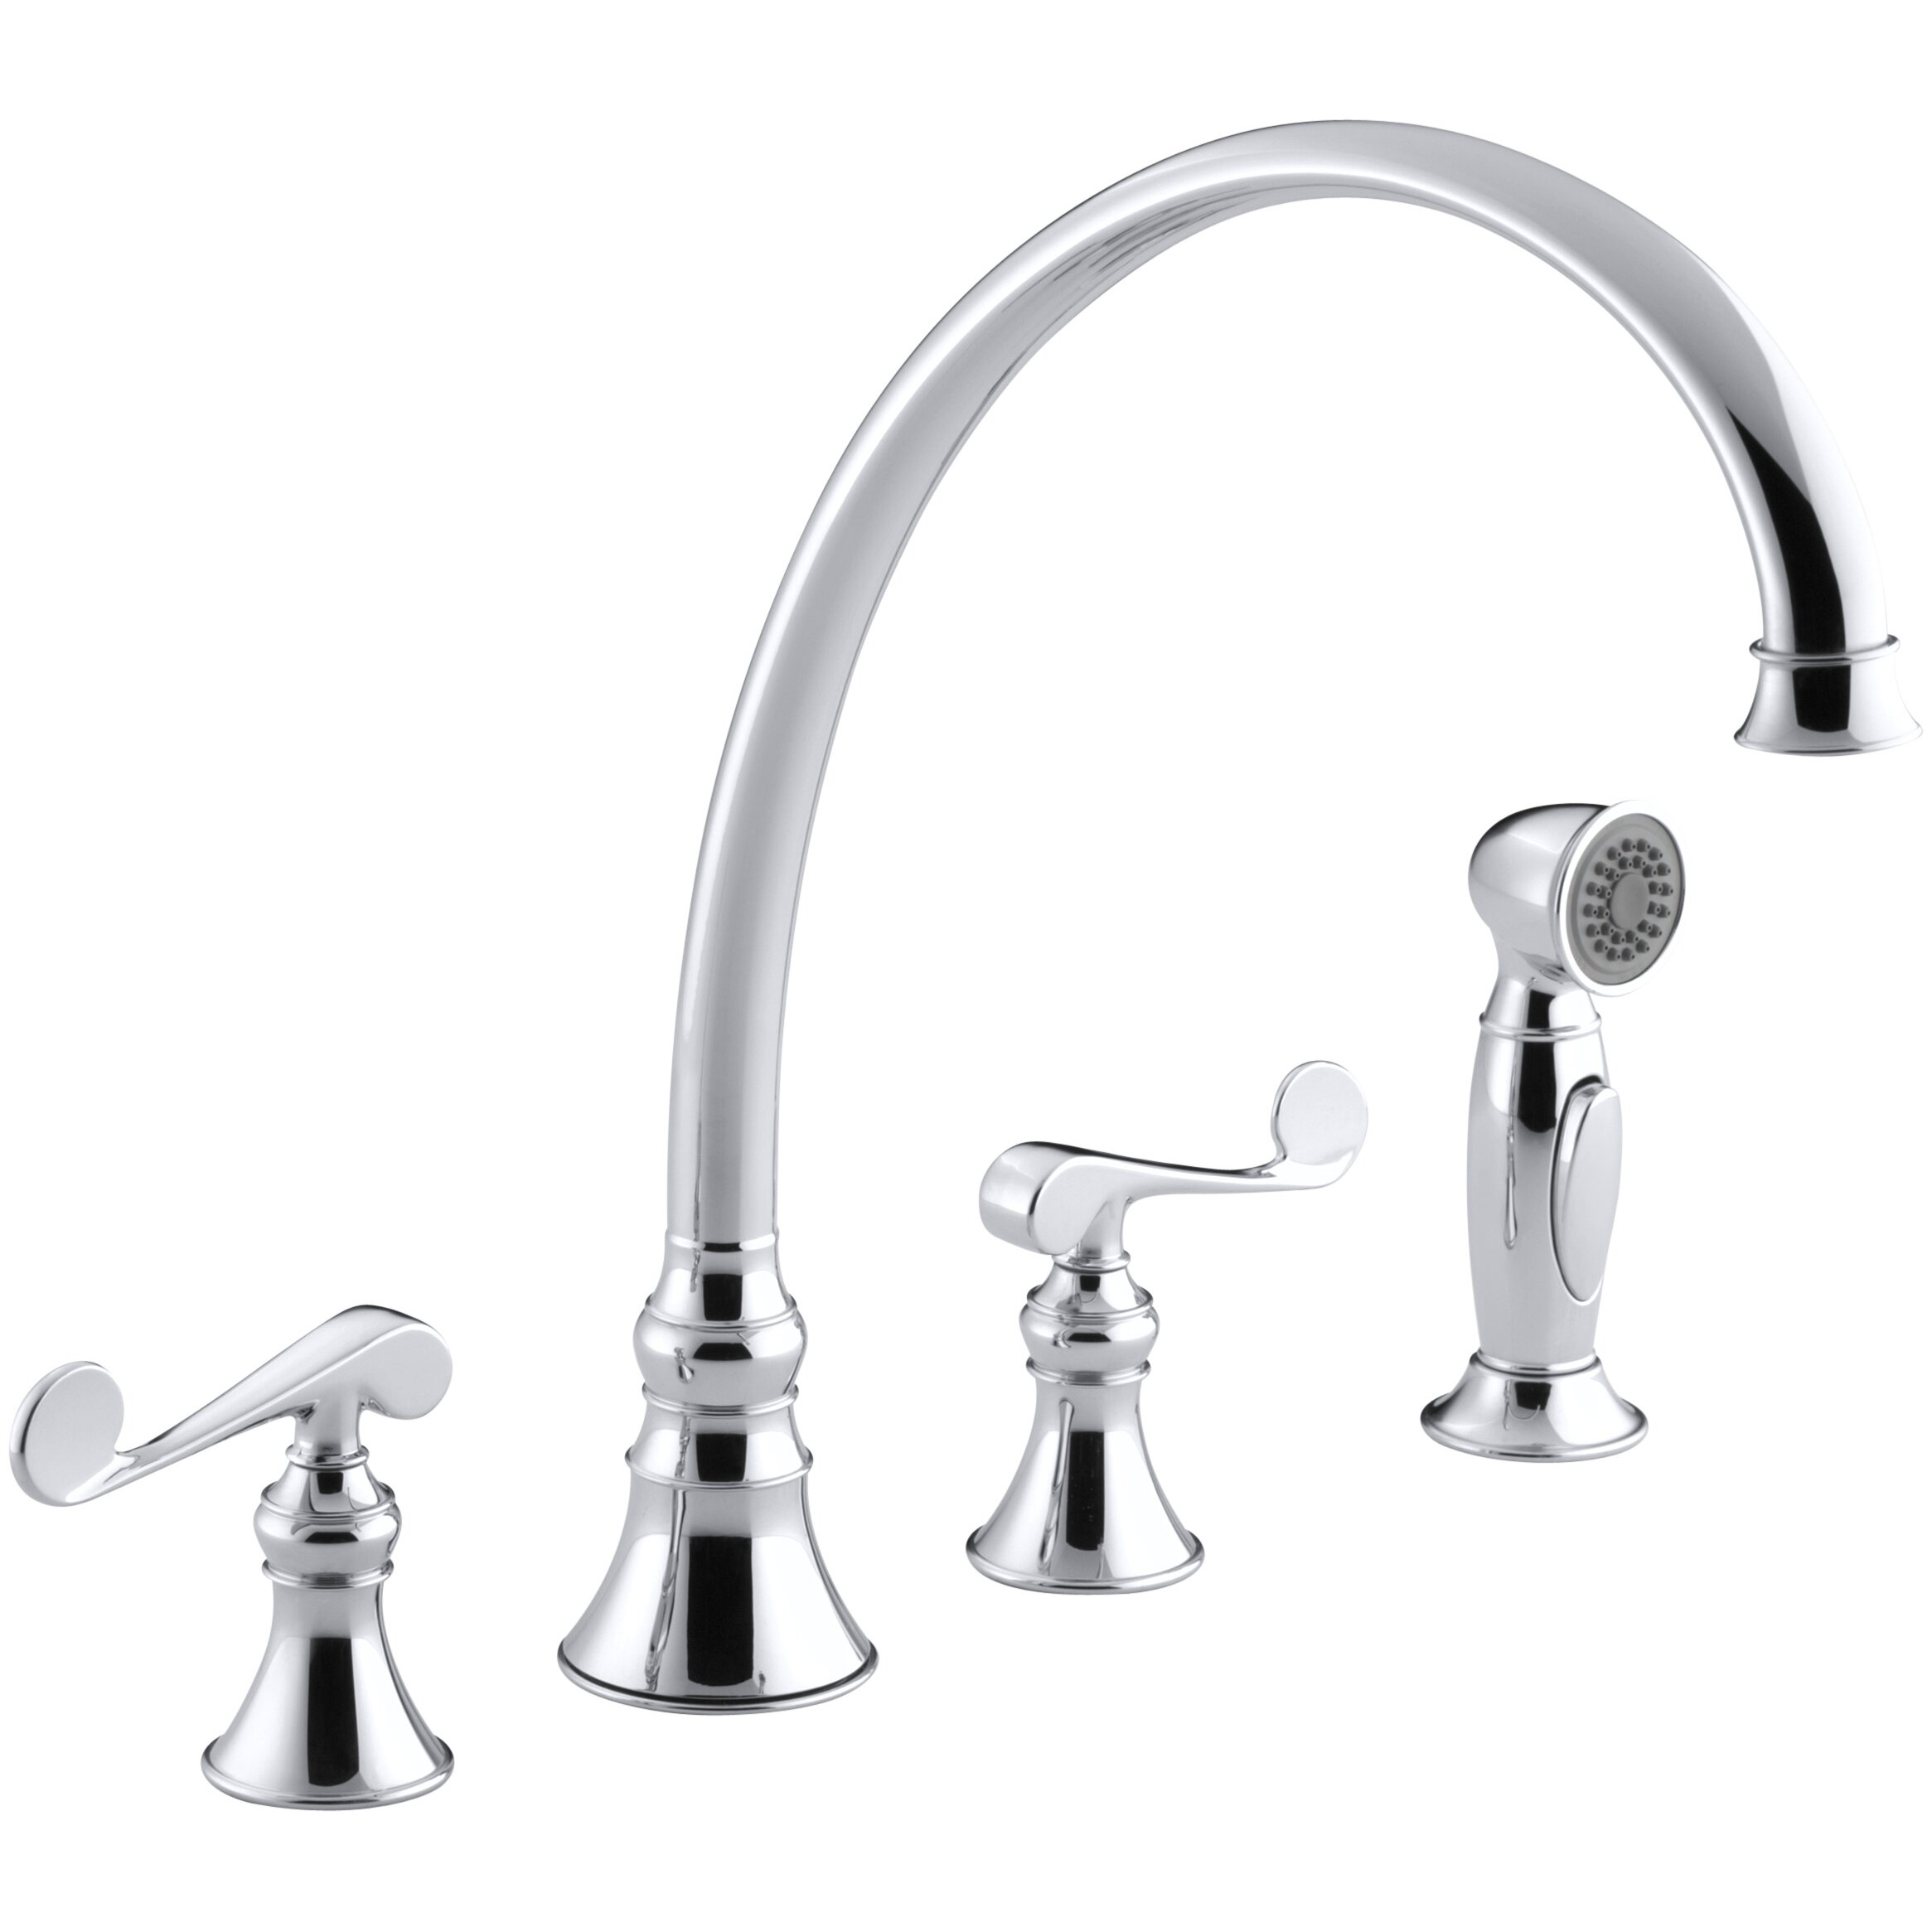 Kohler Revival 4-Hole Kitchen Sink Faucet With 11-13/16